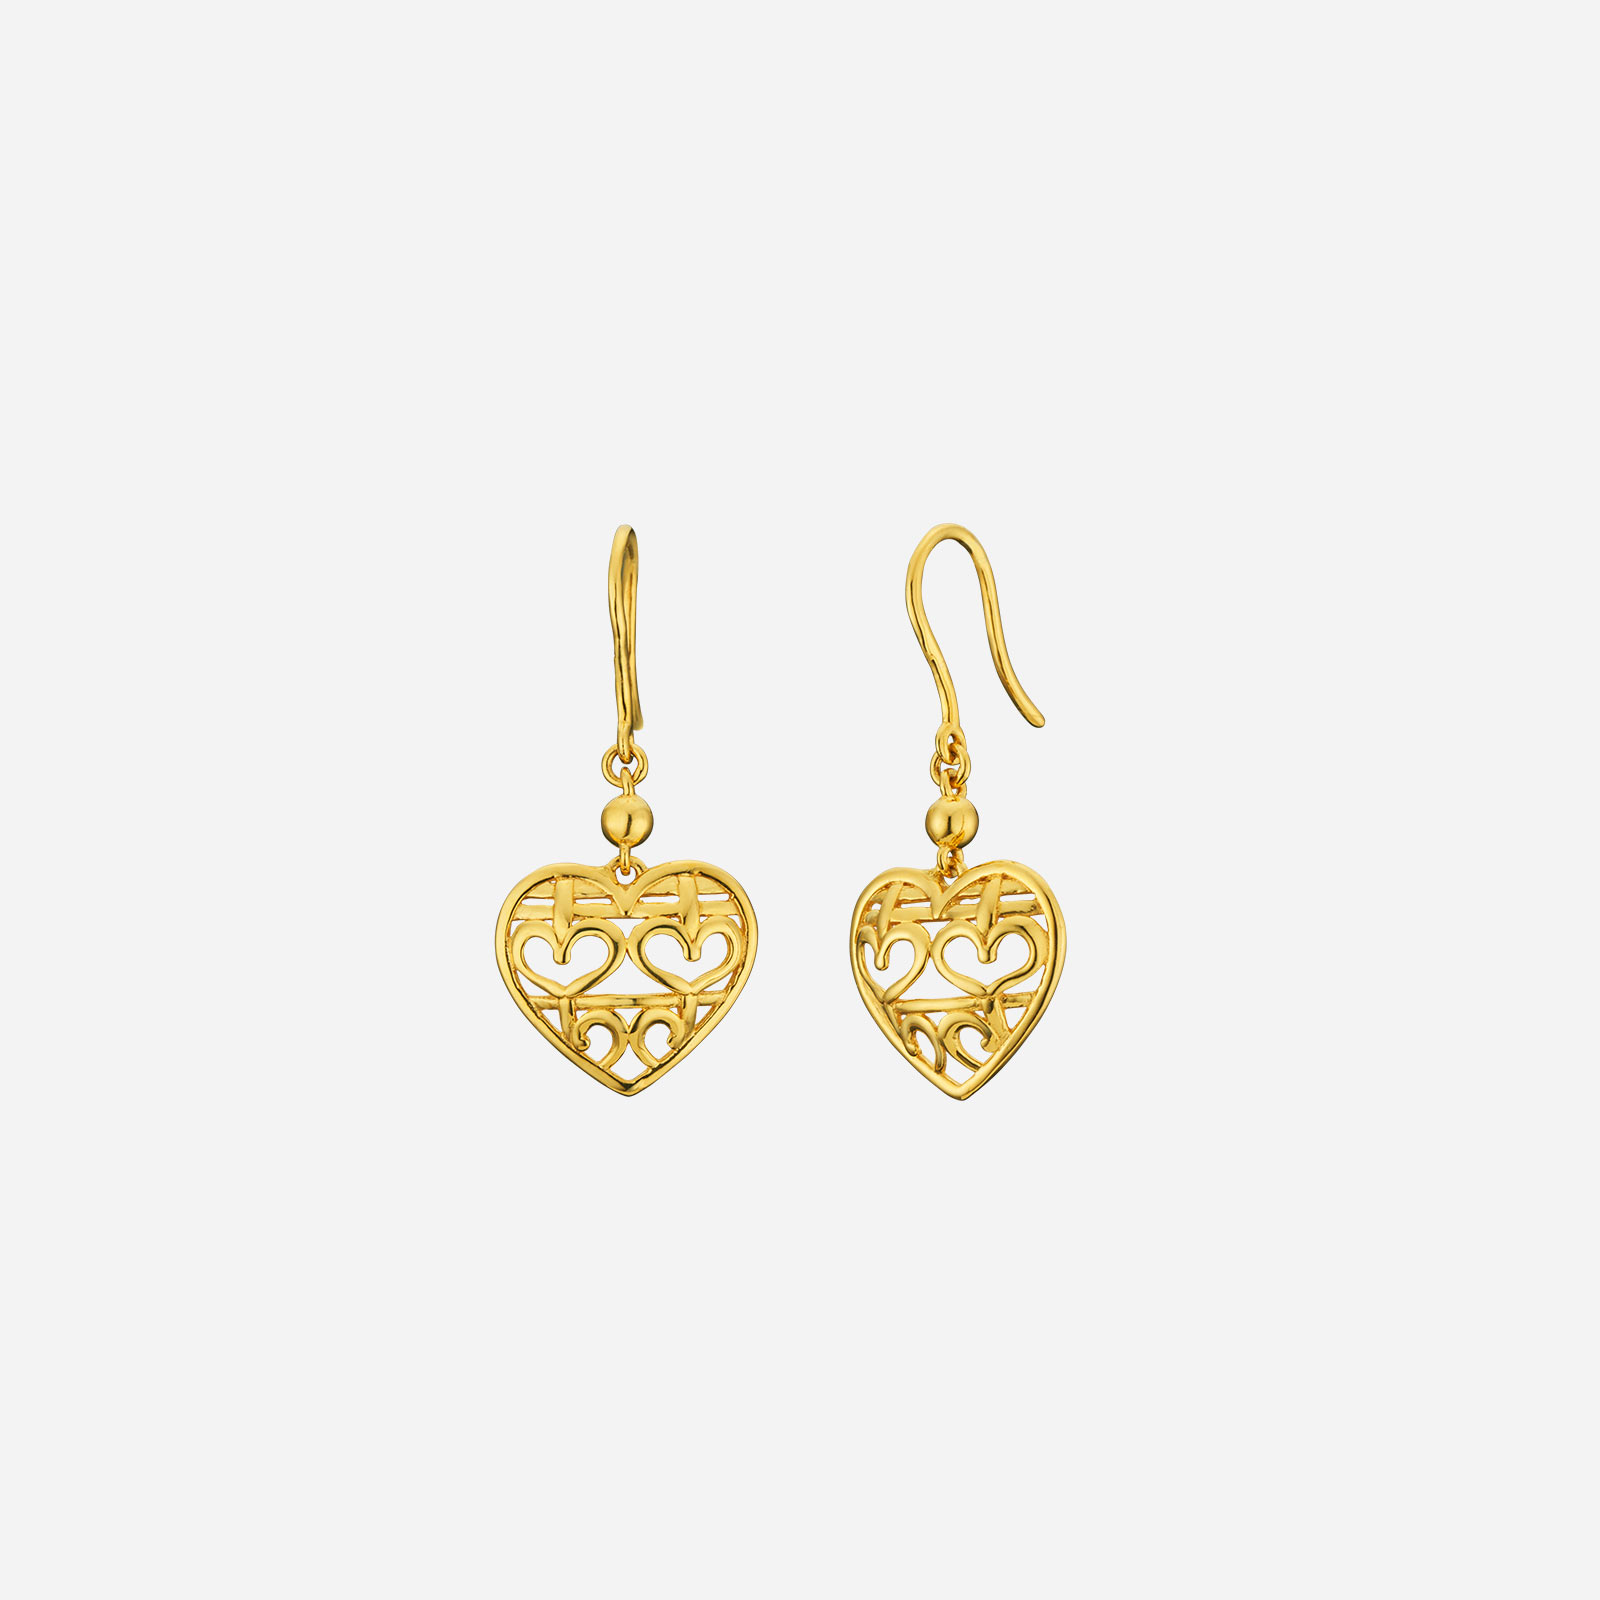 Double Happiness Heart Earrings